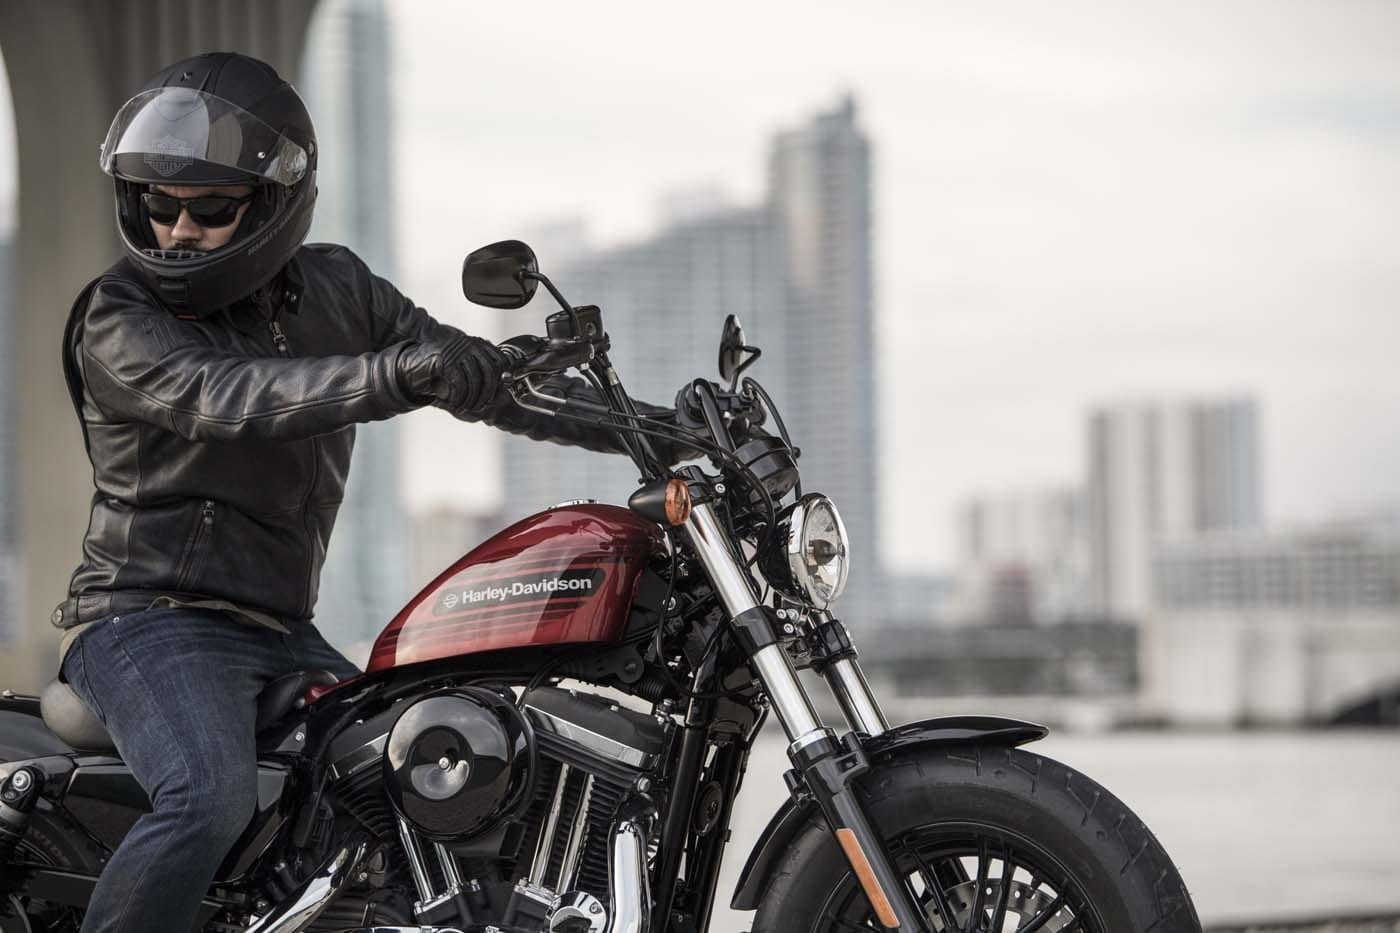 HARLEY-DAVIDSON FORTY-EIGHT SPECIAL AND IRON 1200 SPORTSTERS 21